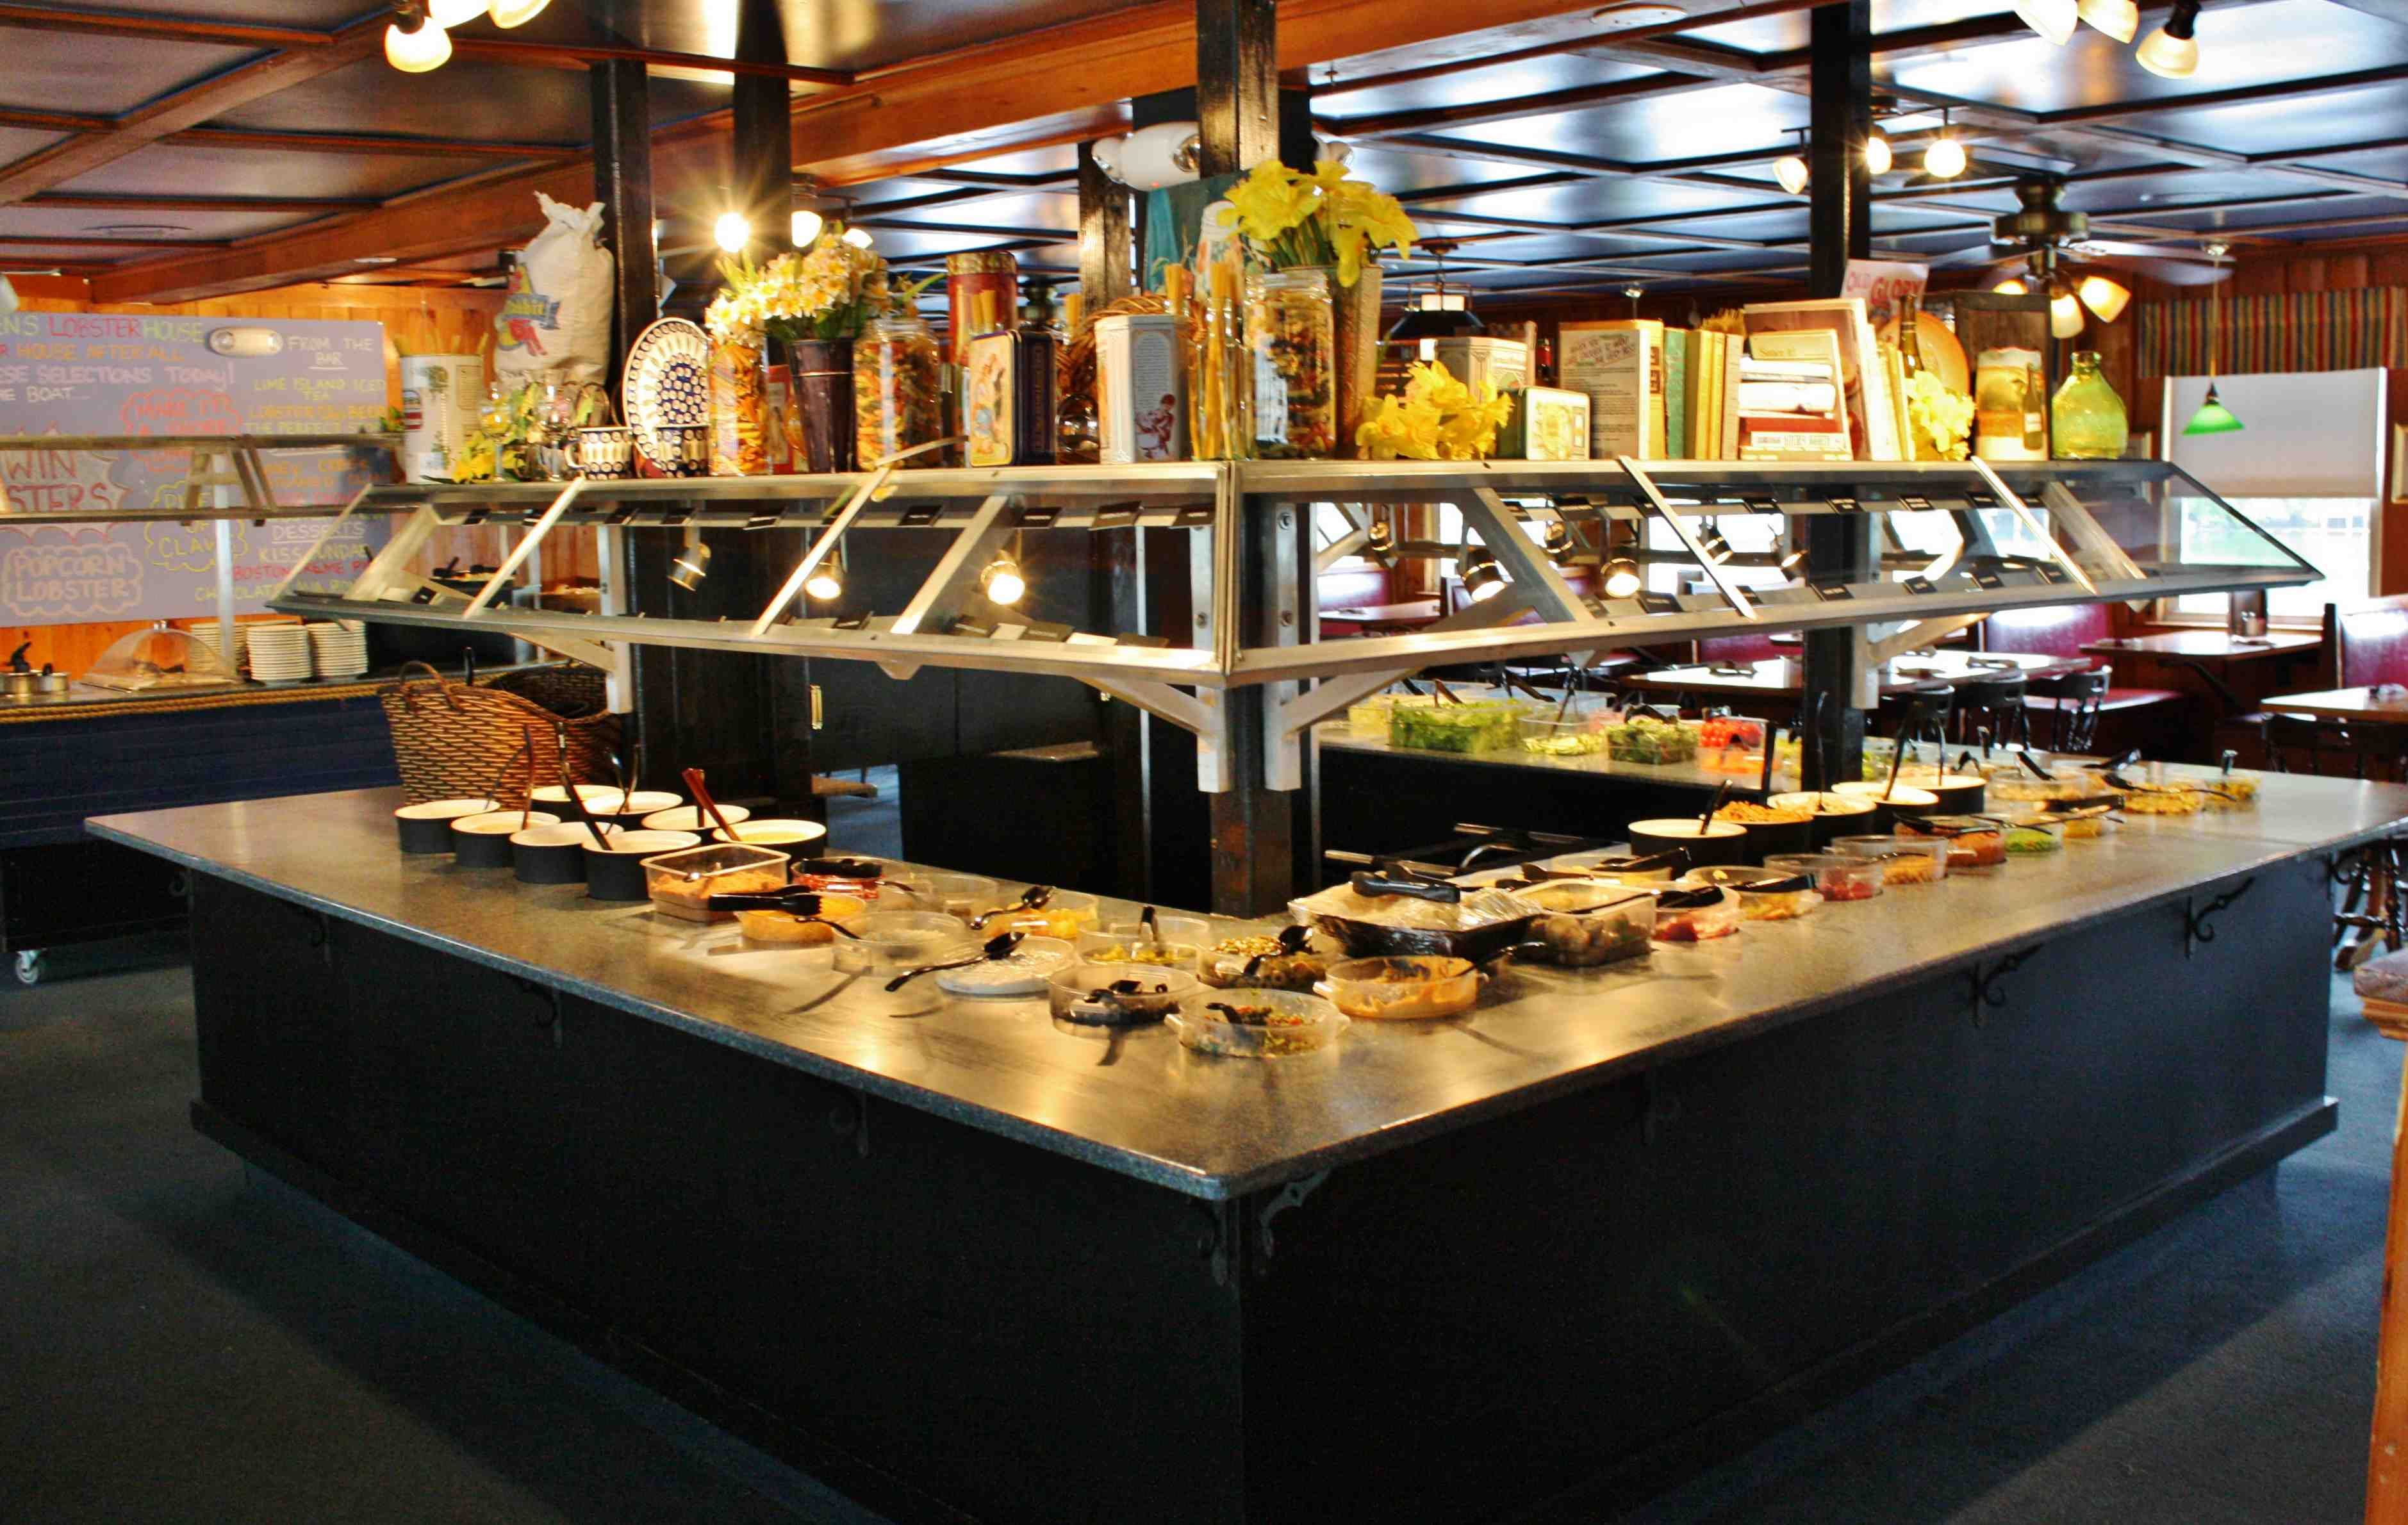 The huge salad bar at Warren's Lobster house in Kittery, Maine